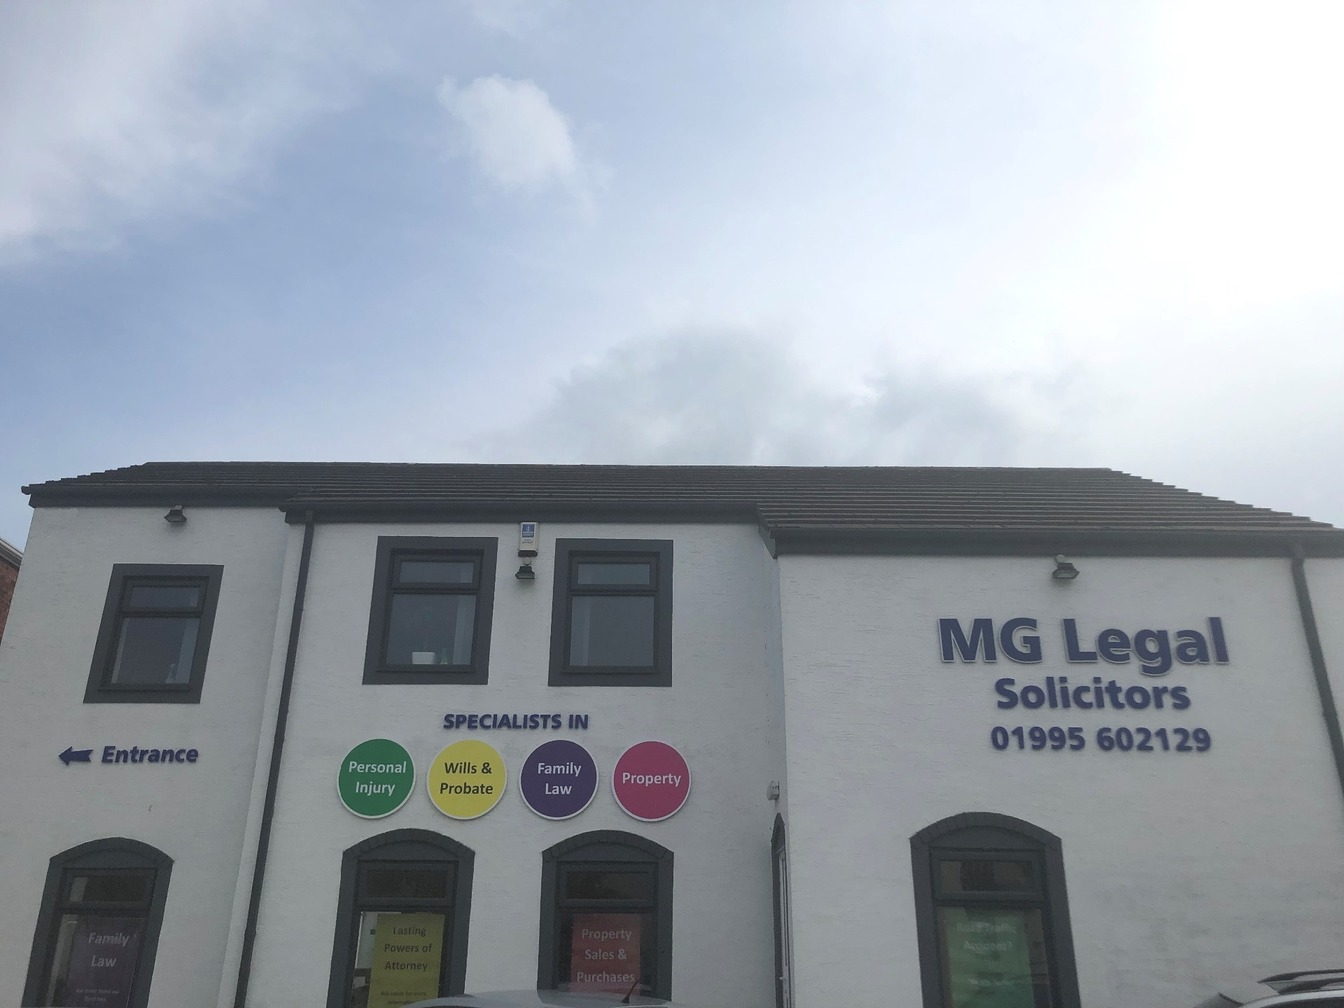 MG Legal's Garstang office.